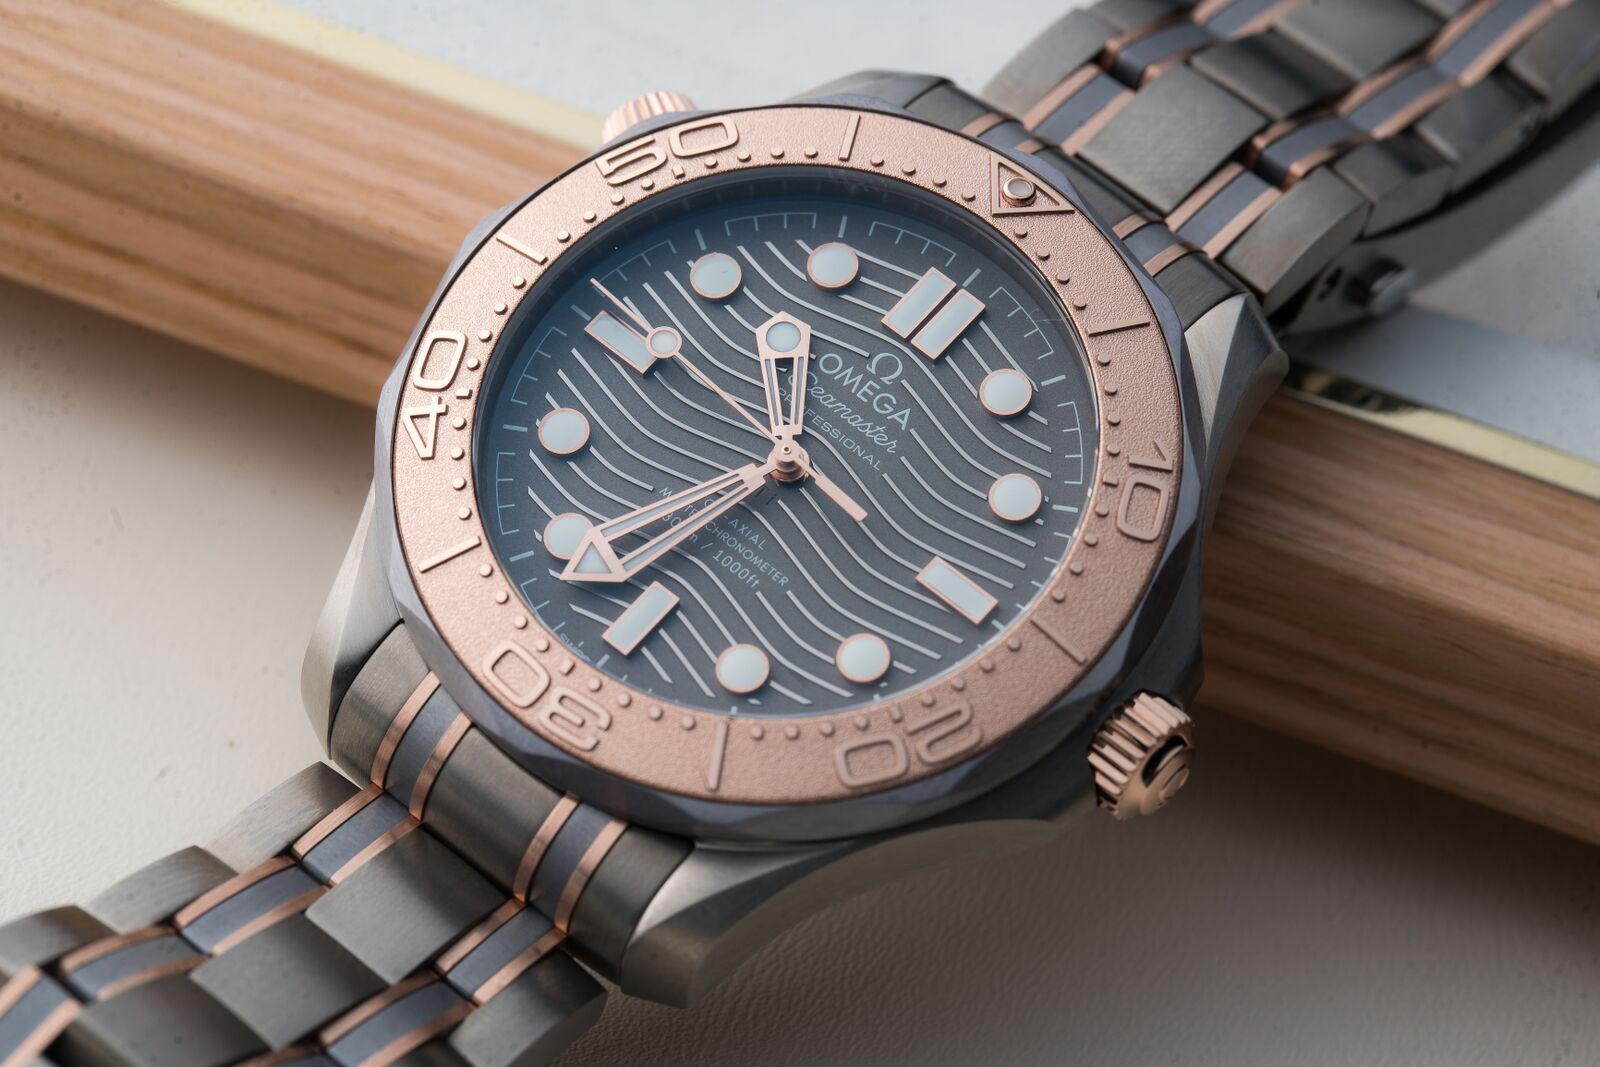 Proprietary Gold Alloys From Top Watchmakers: Omega Sedna